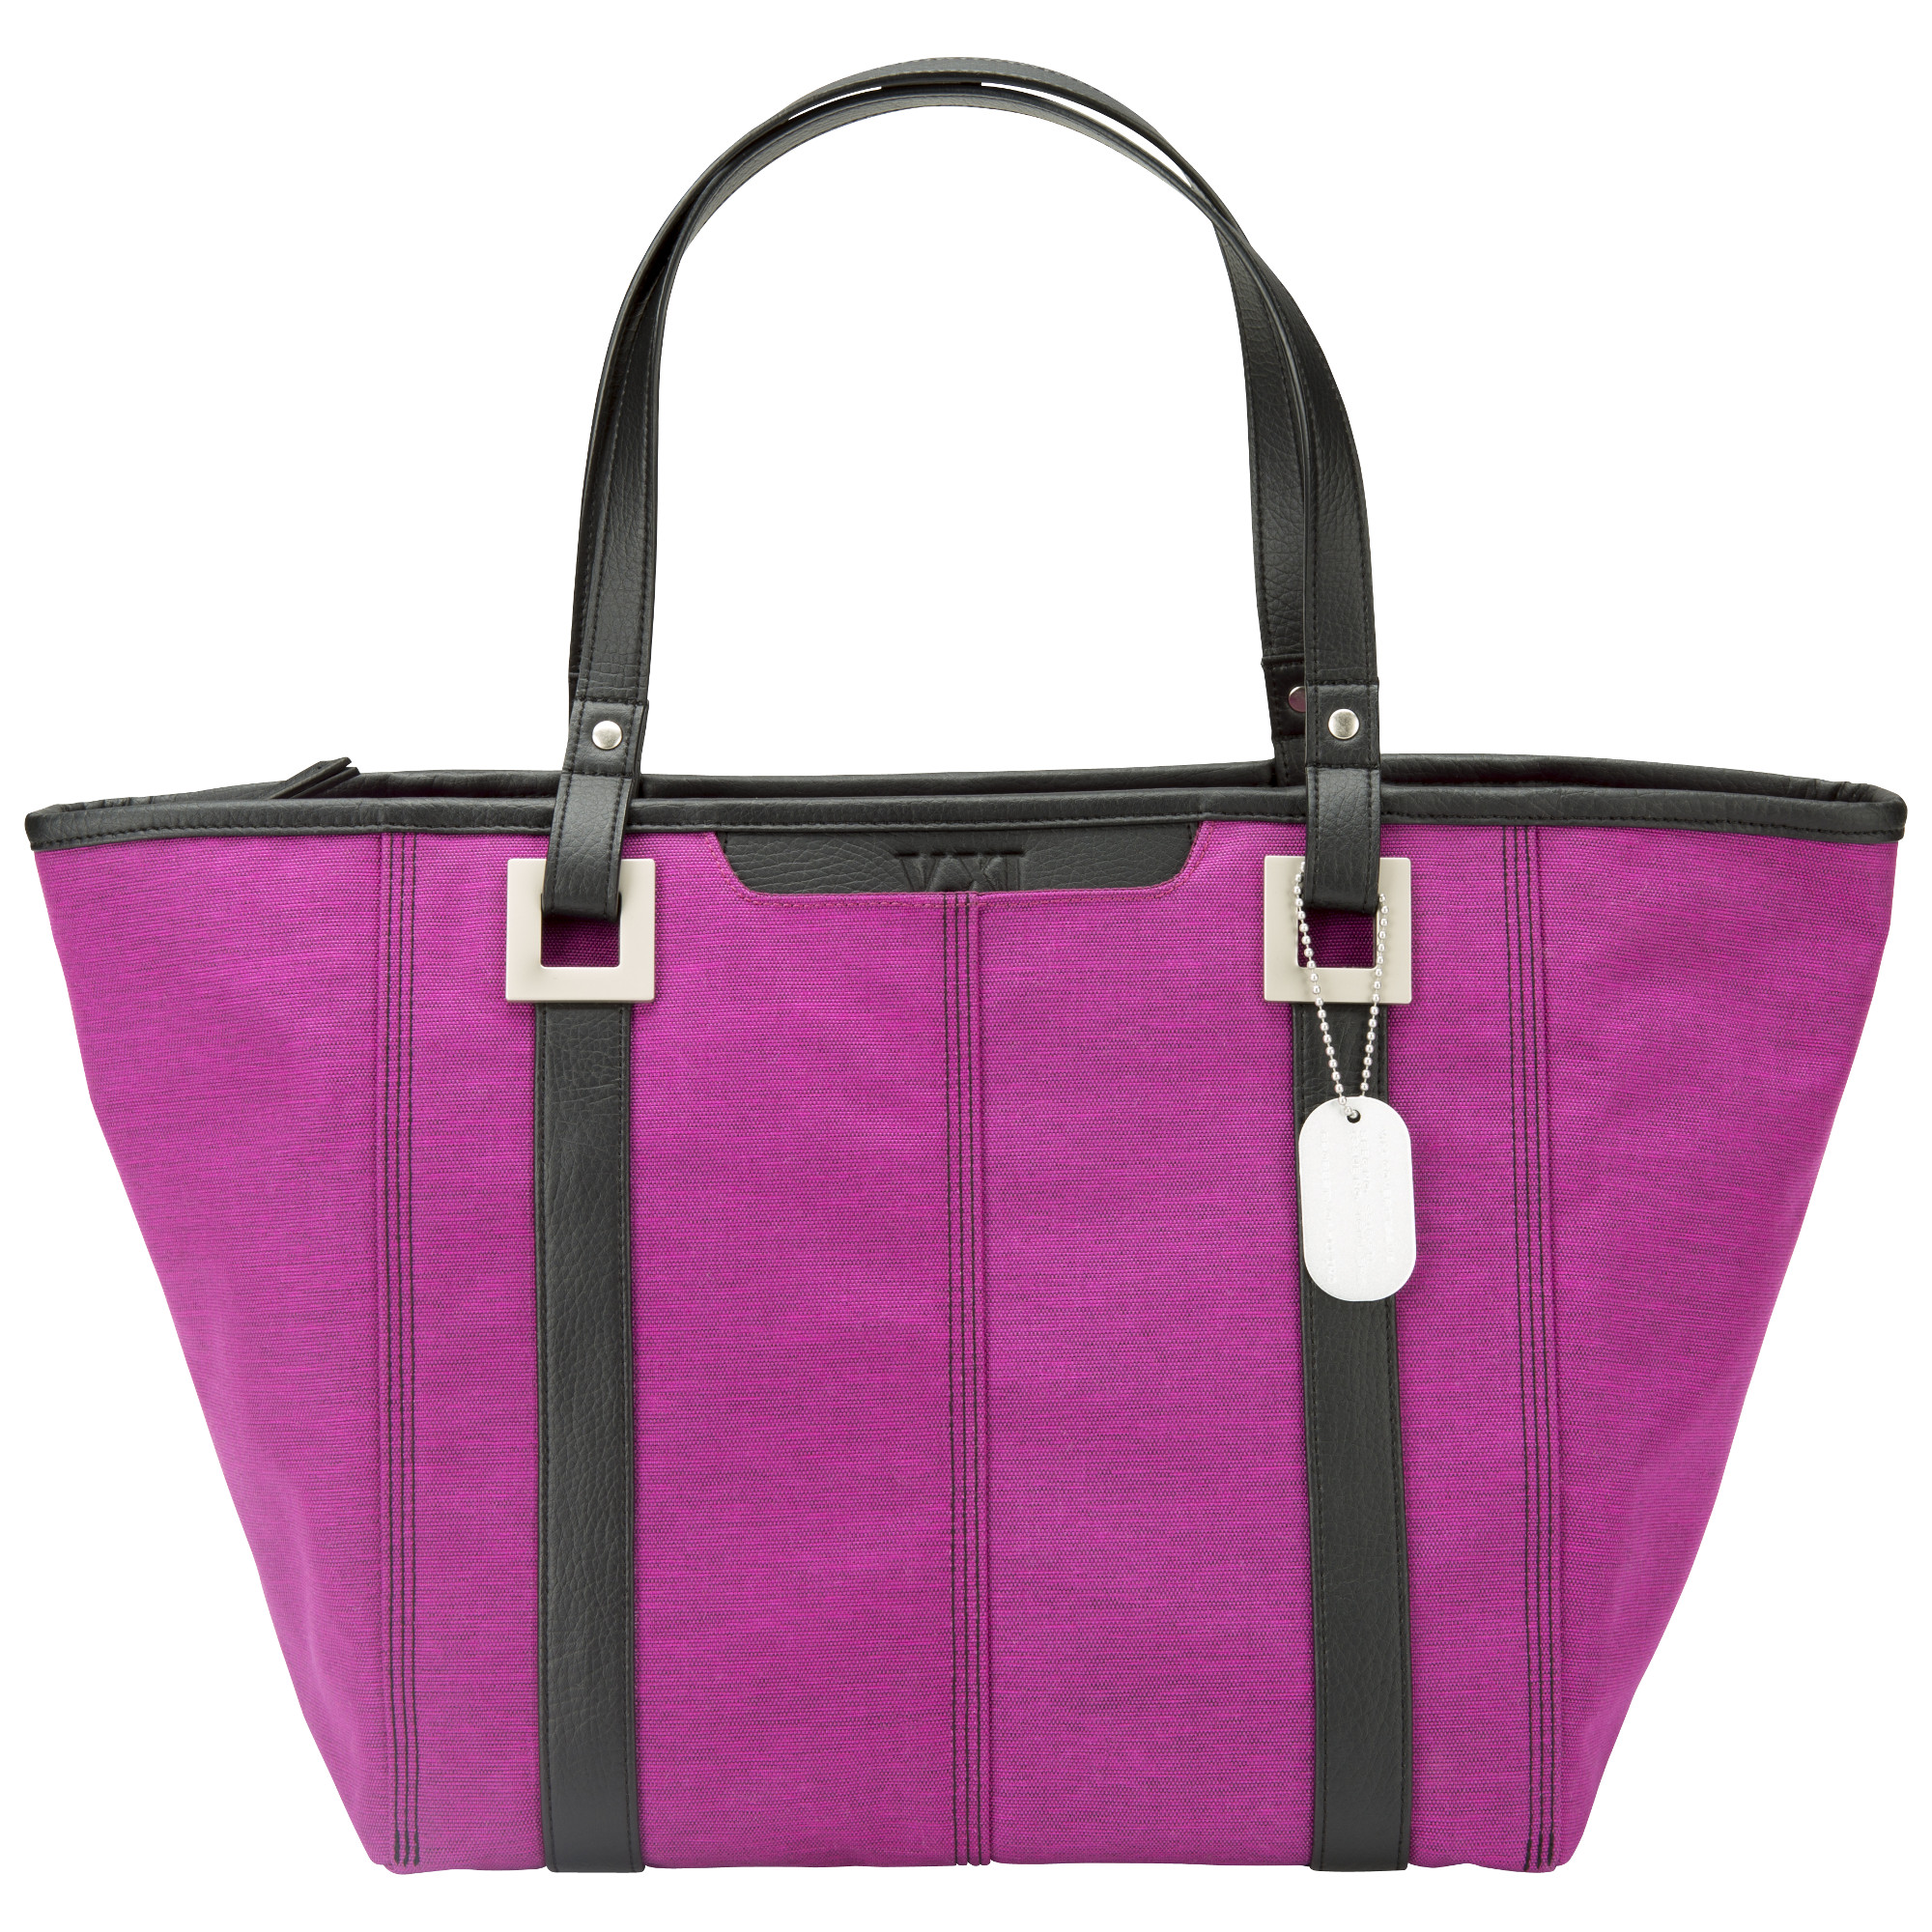 5.11 Tactical Women's Lucy Tote Deluxe (Pink)